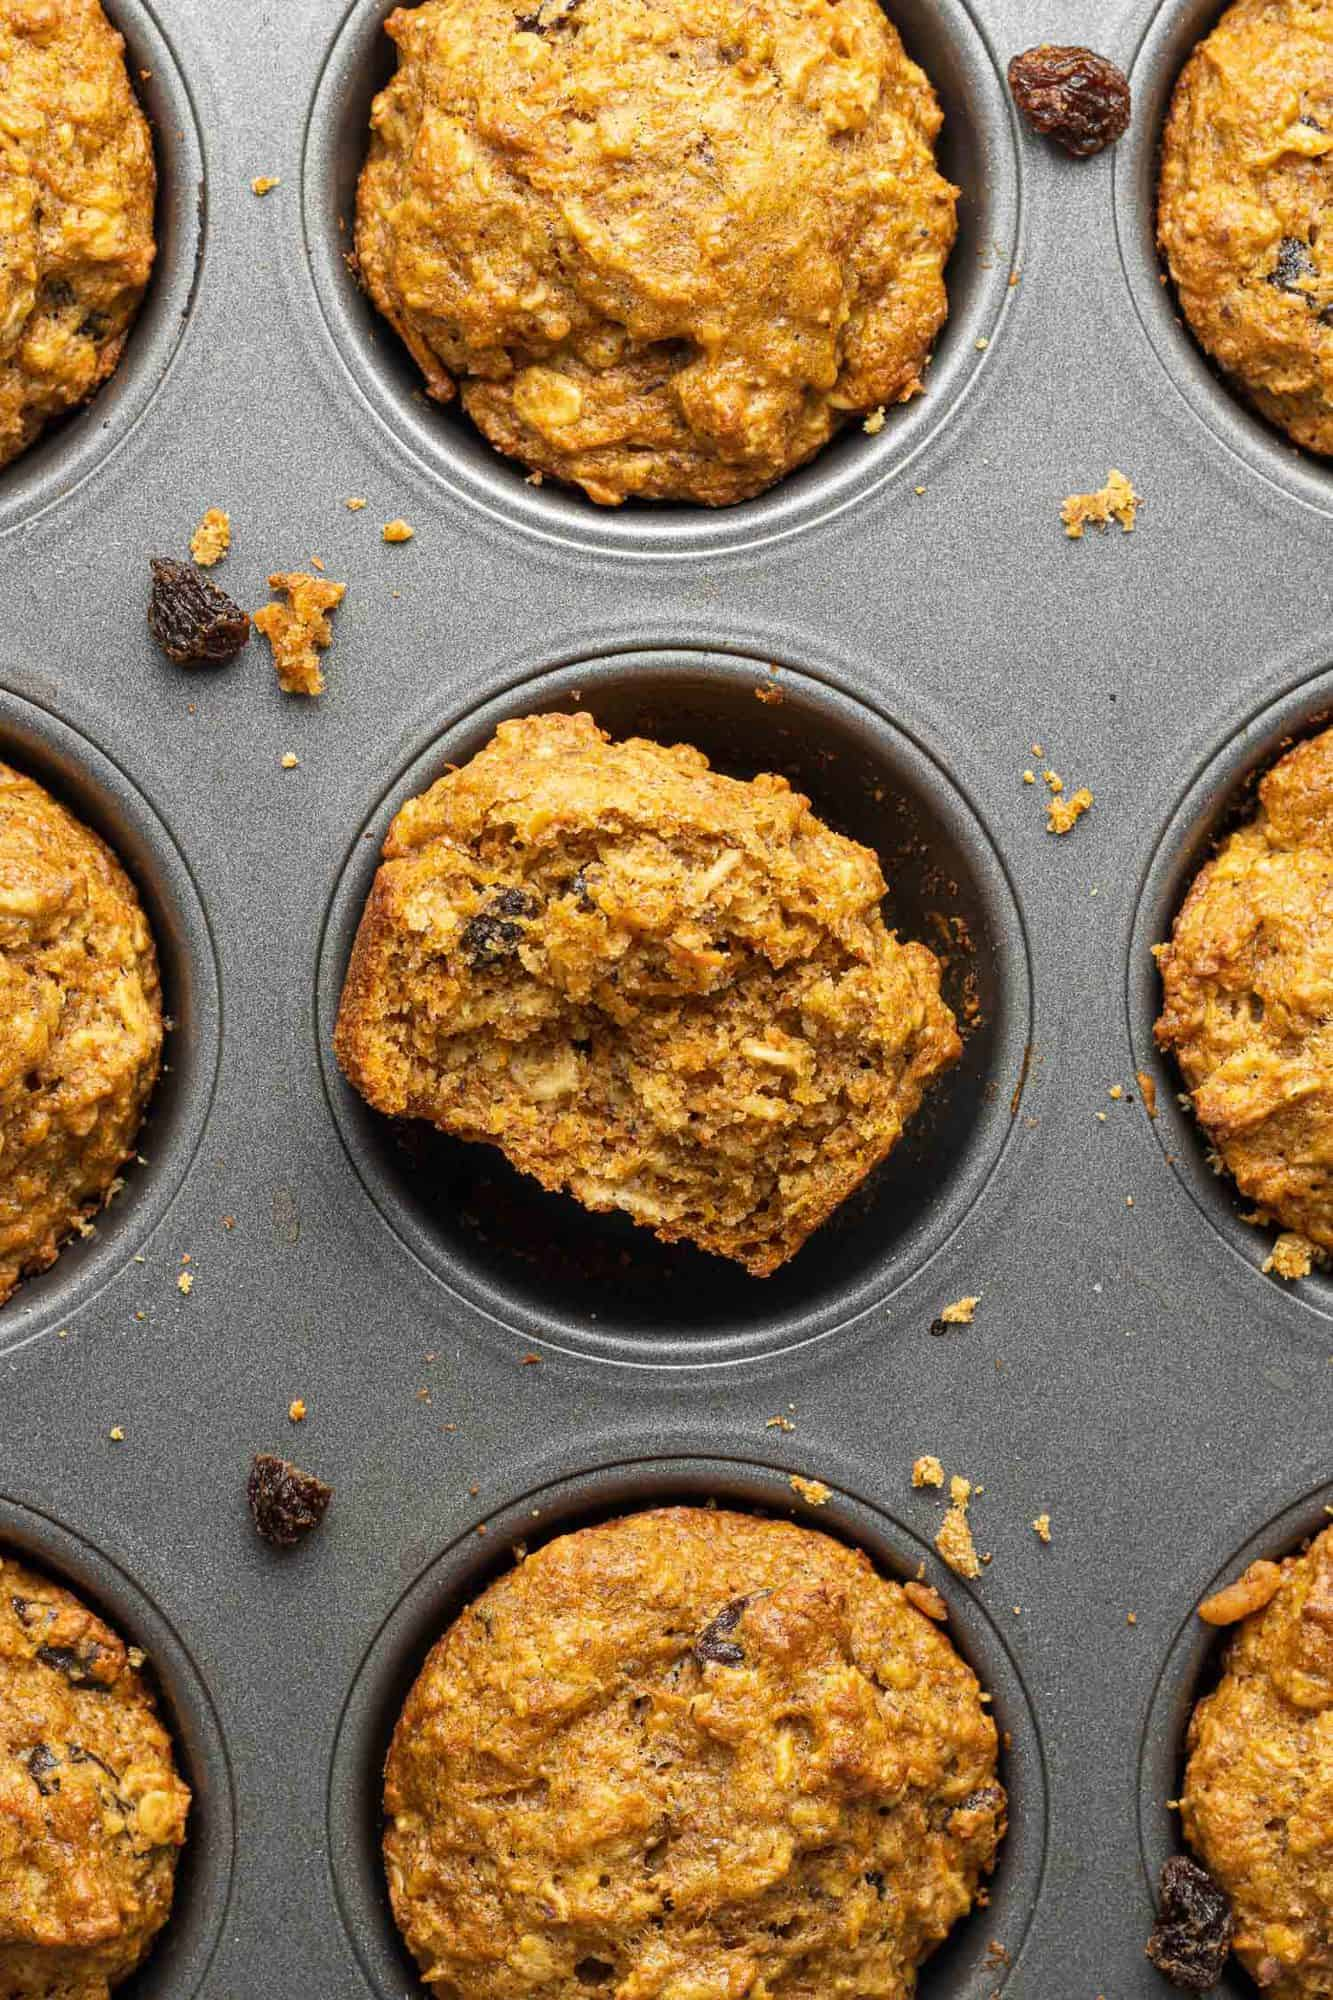 Overhead view of muffins in a metal muffin tin.